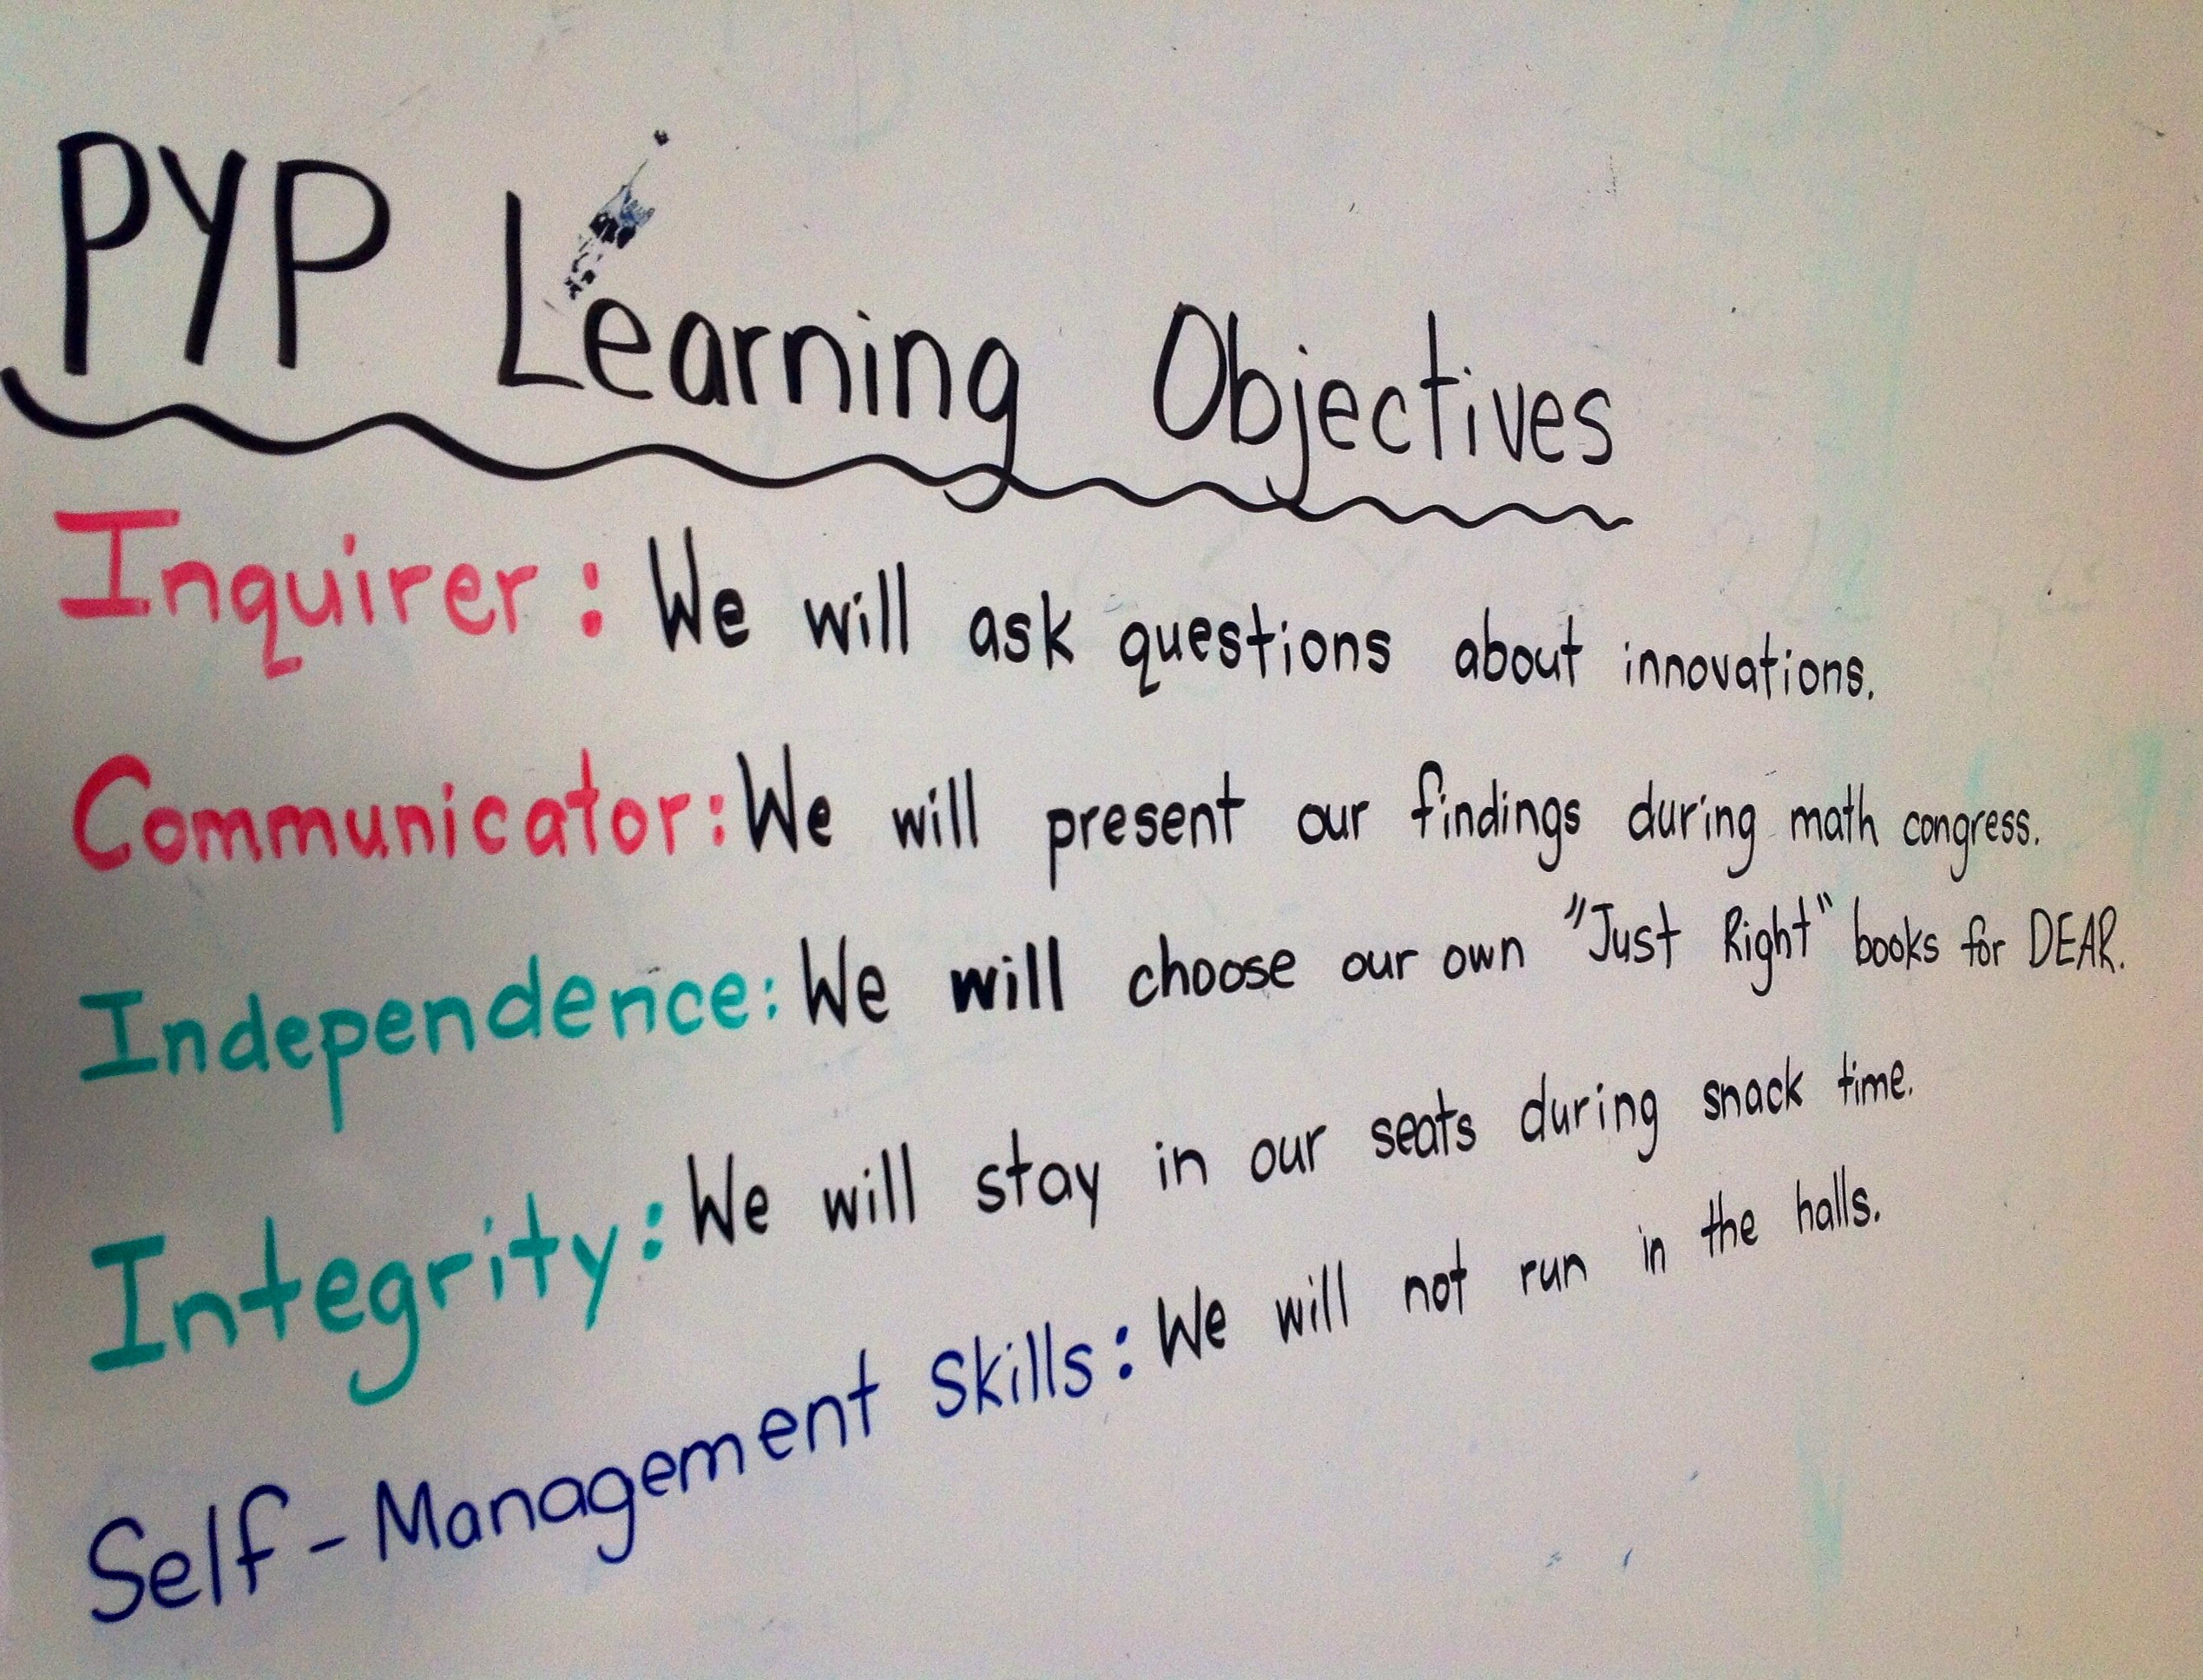 Pyp Daily Learning Objectives